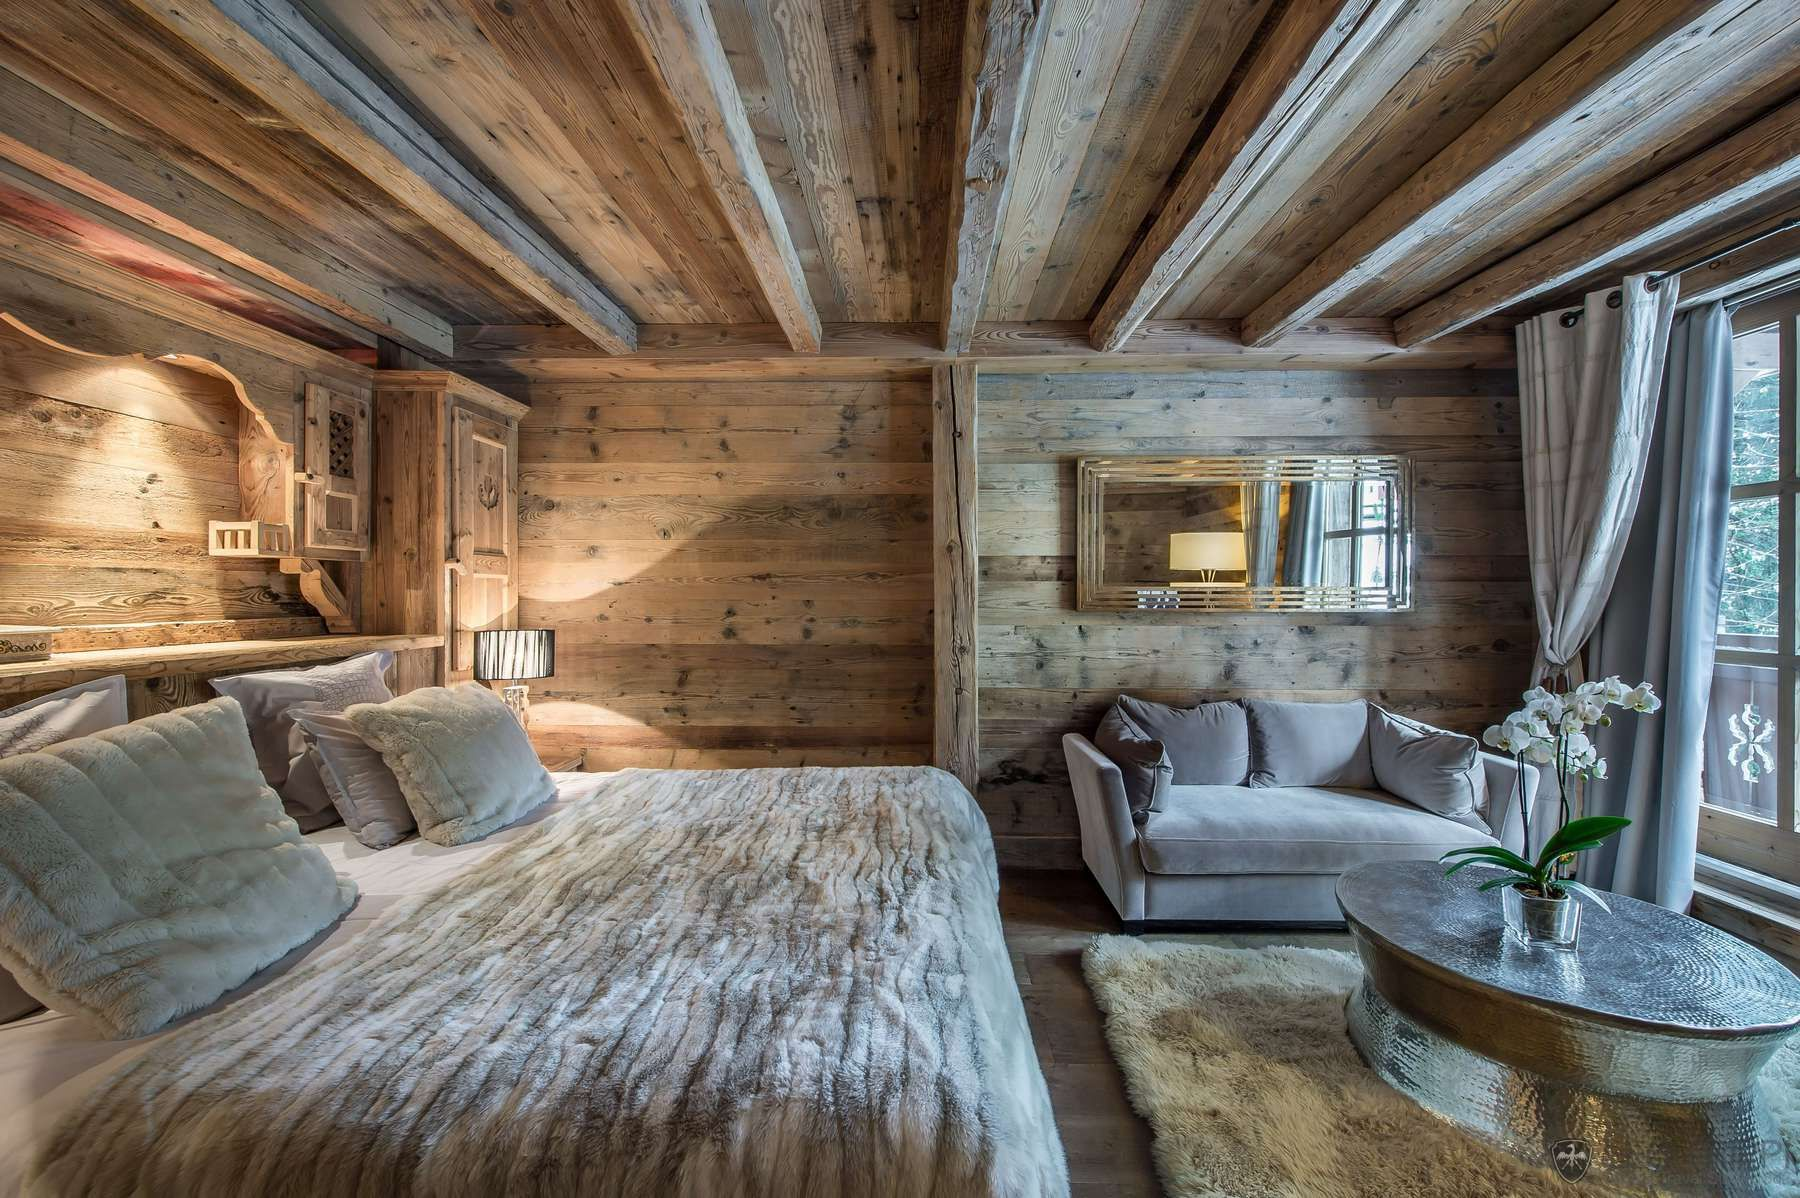 Location de Chalet de luxe à Courchevel 1850 - Chalet Maria 1850 ...